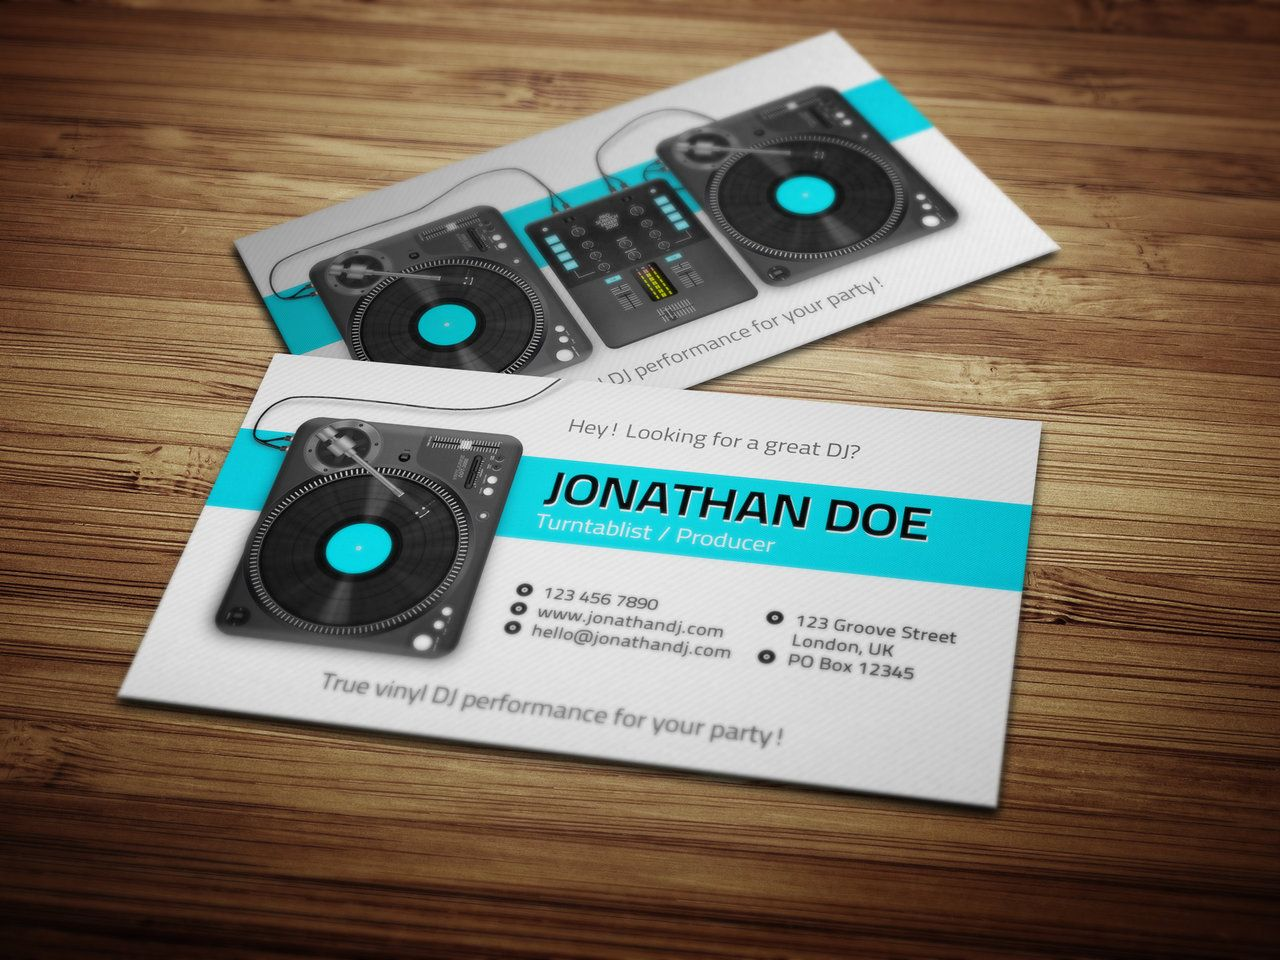 Turntablist Dj Business Card By Iamvinyljunkie On Deviantart Dj Business Cards Printing Business Cards Free Business Card Templates